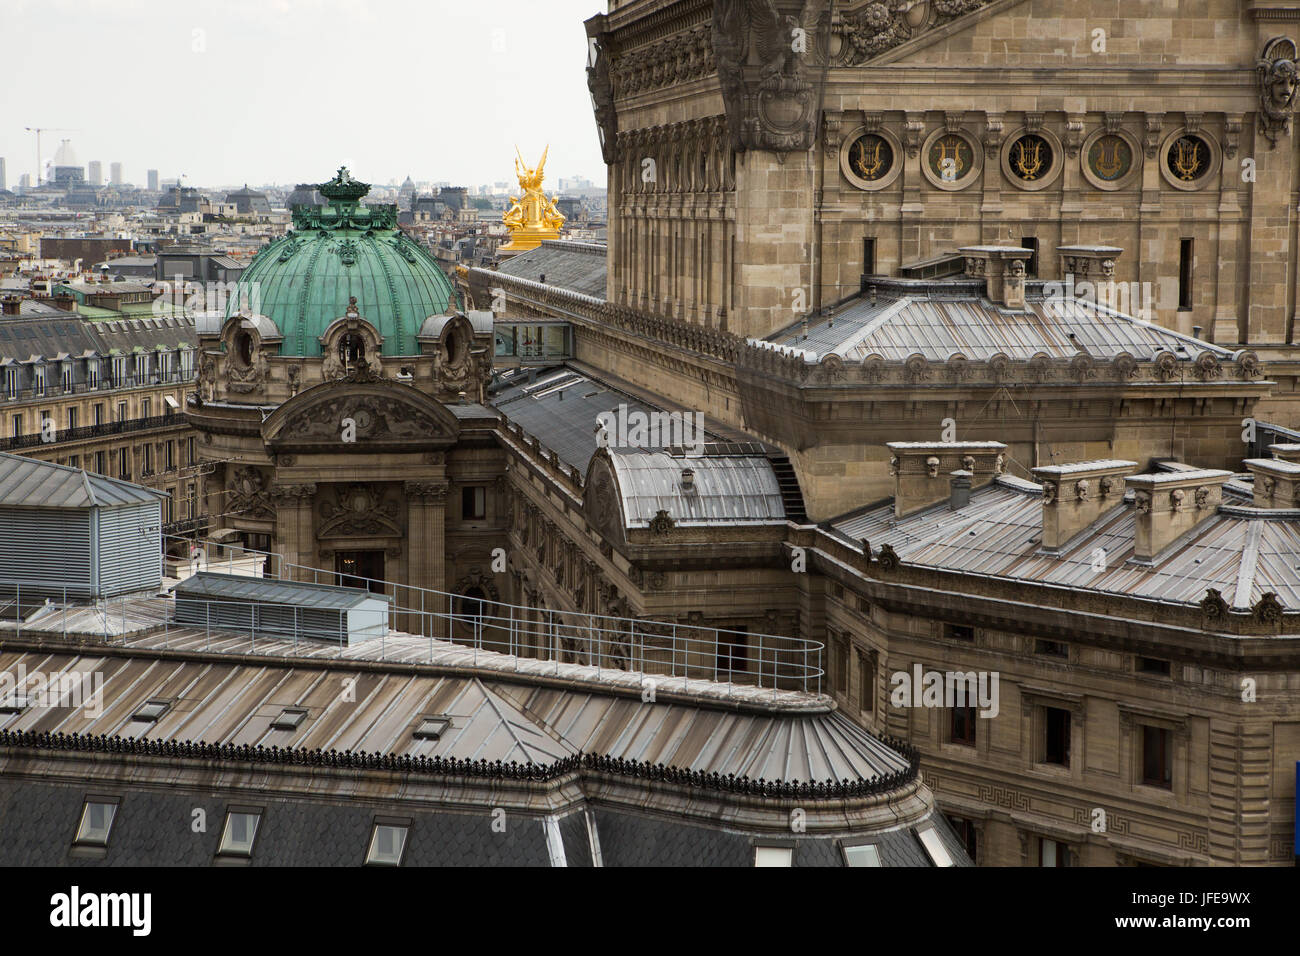 The architecture of the Paris Opera House, Garnier Palace, against the city backdrop. - Stock Image